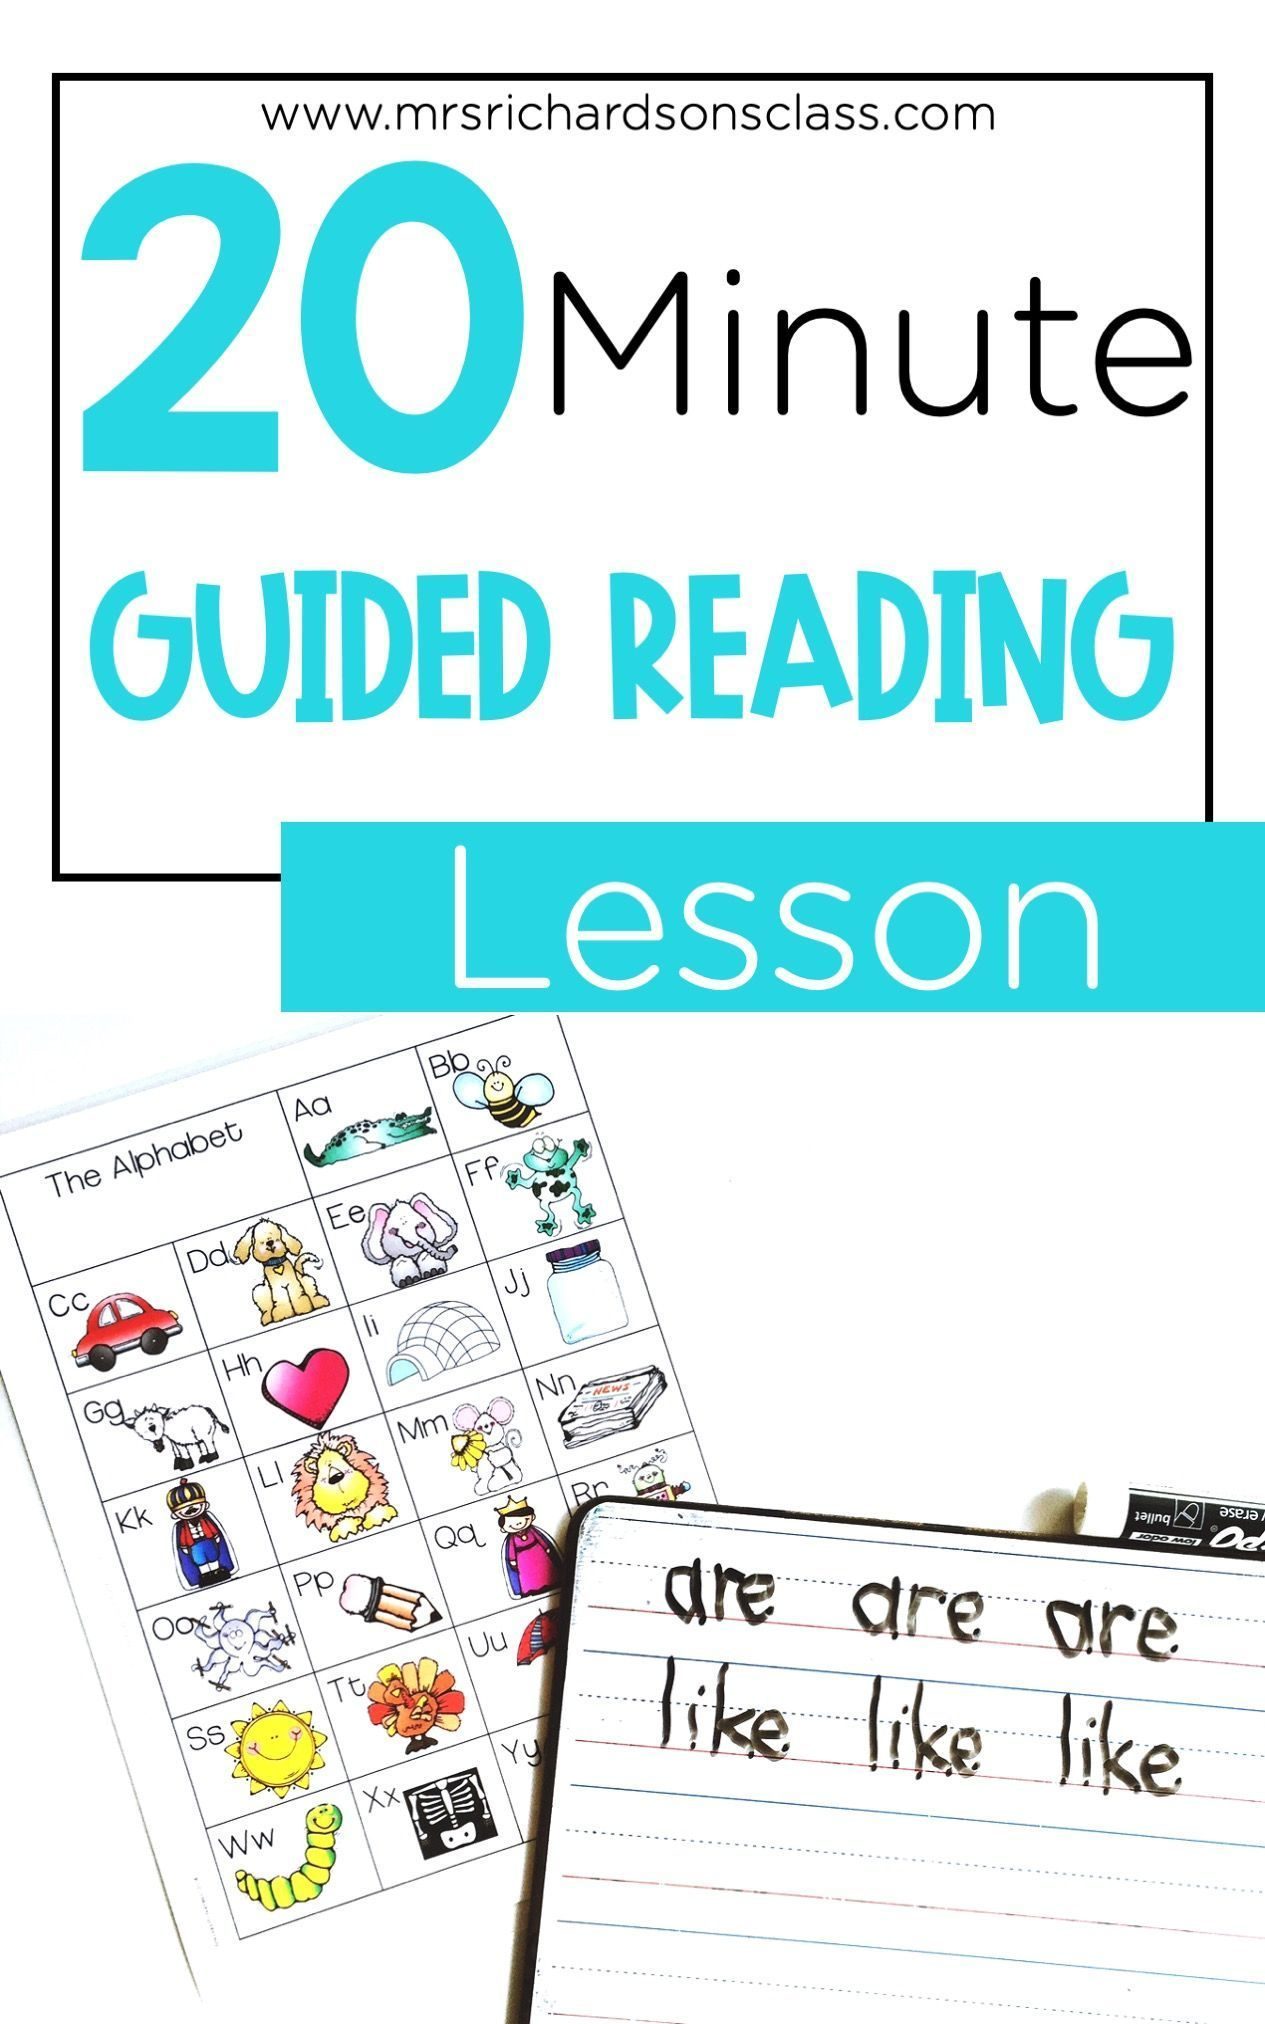 Structuring A Guided Reading Lesson Made Easy In 2021 Guided Reading Lessons Kindergarten Reading Activities Reading Lessons Guided reading lessons for kindergarten